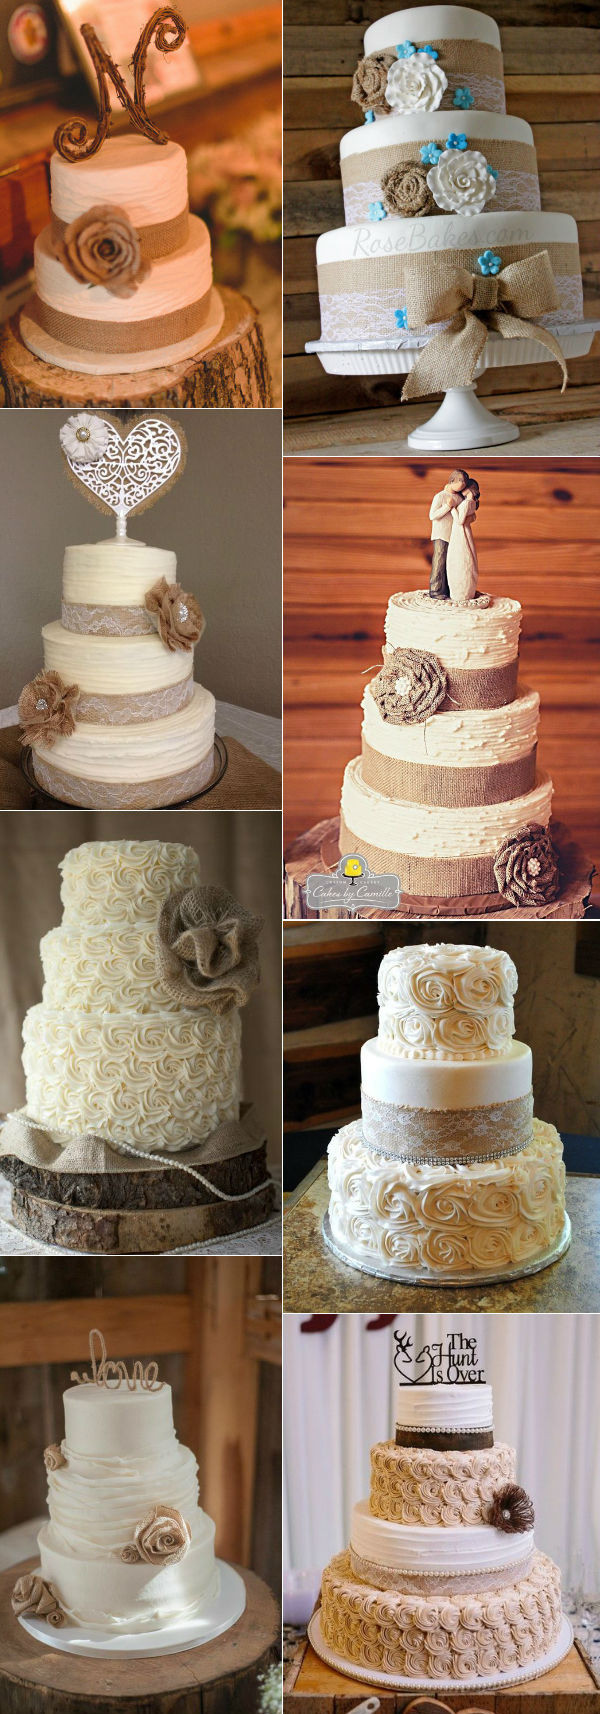 Rustic Wedding Cakes With Burlap  32 Amazing Wedding Cakes Perfect For Fall